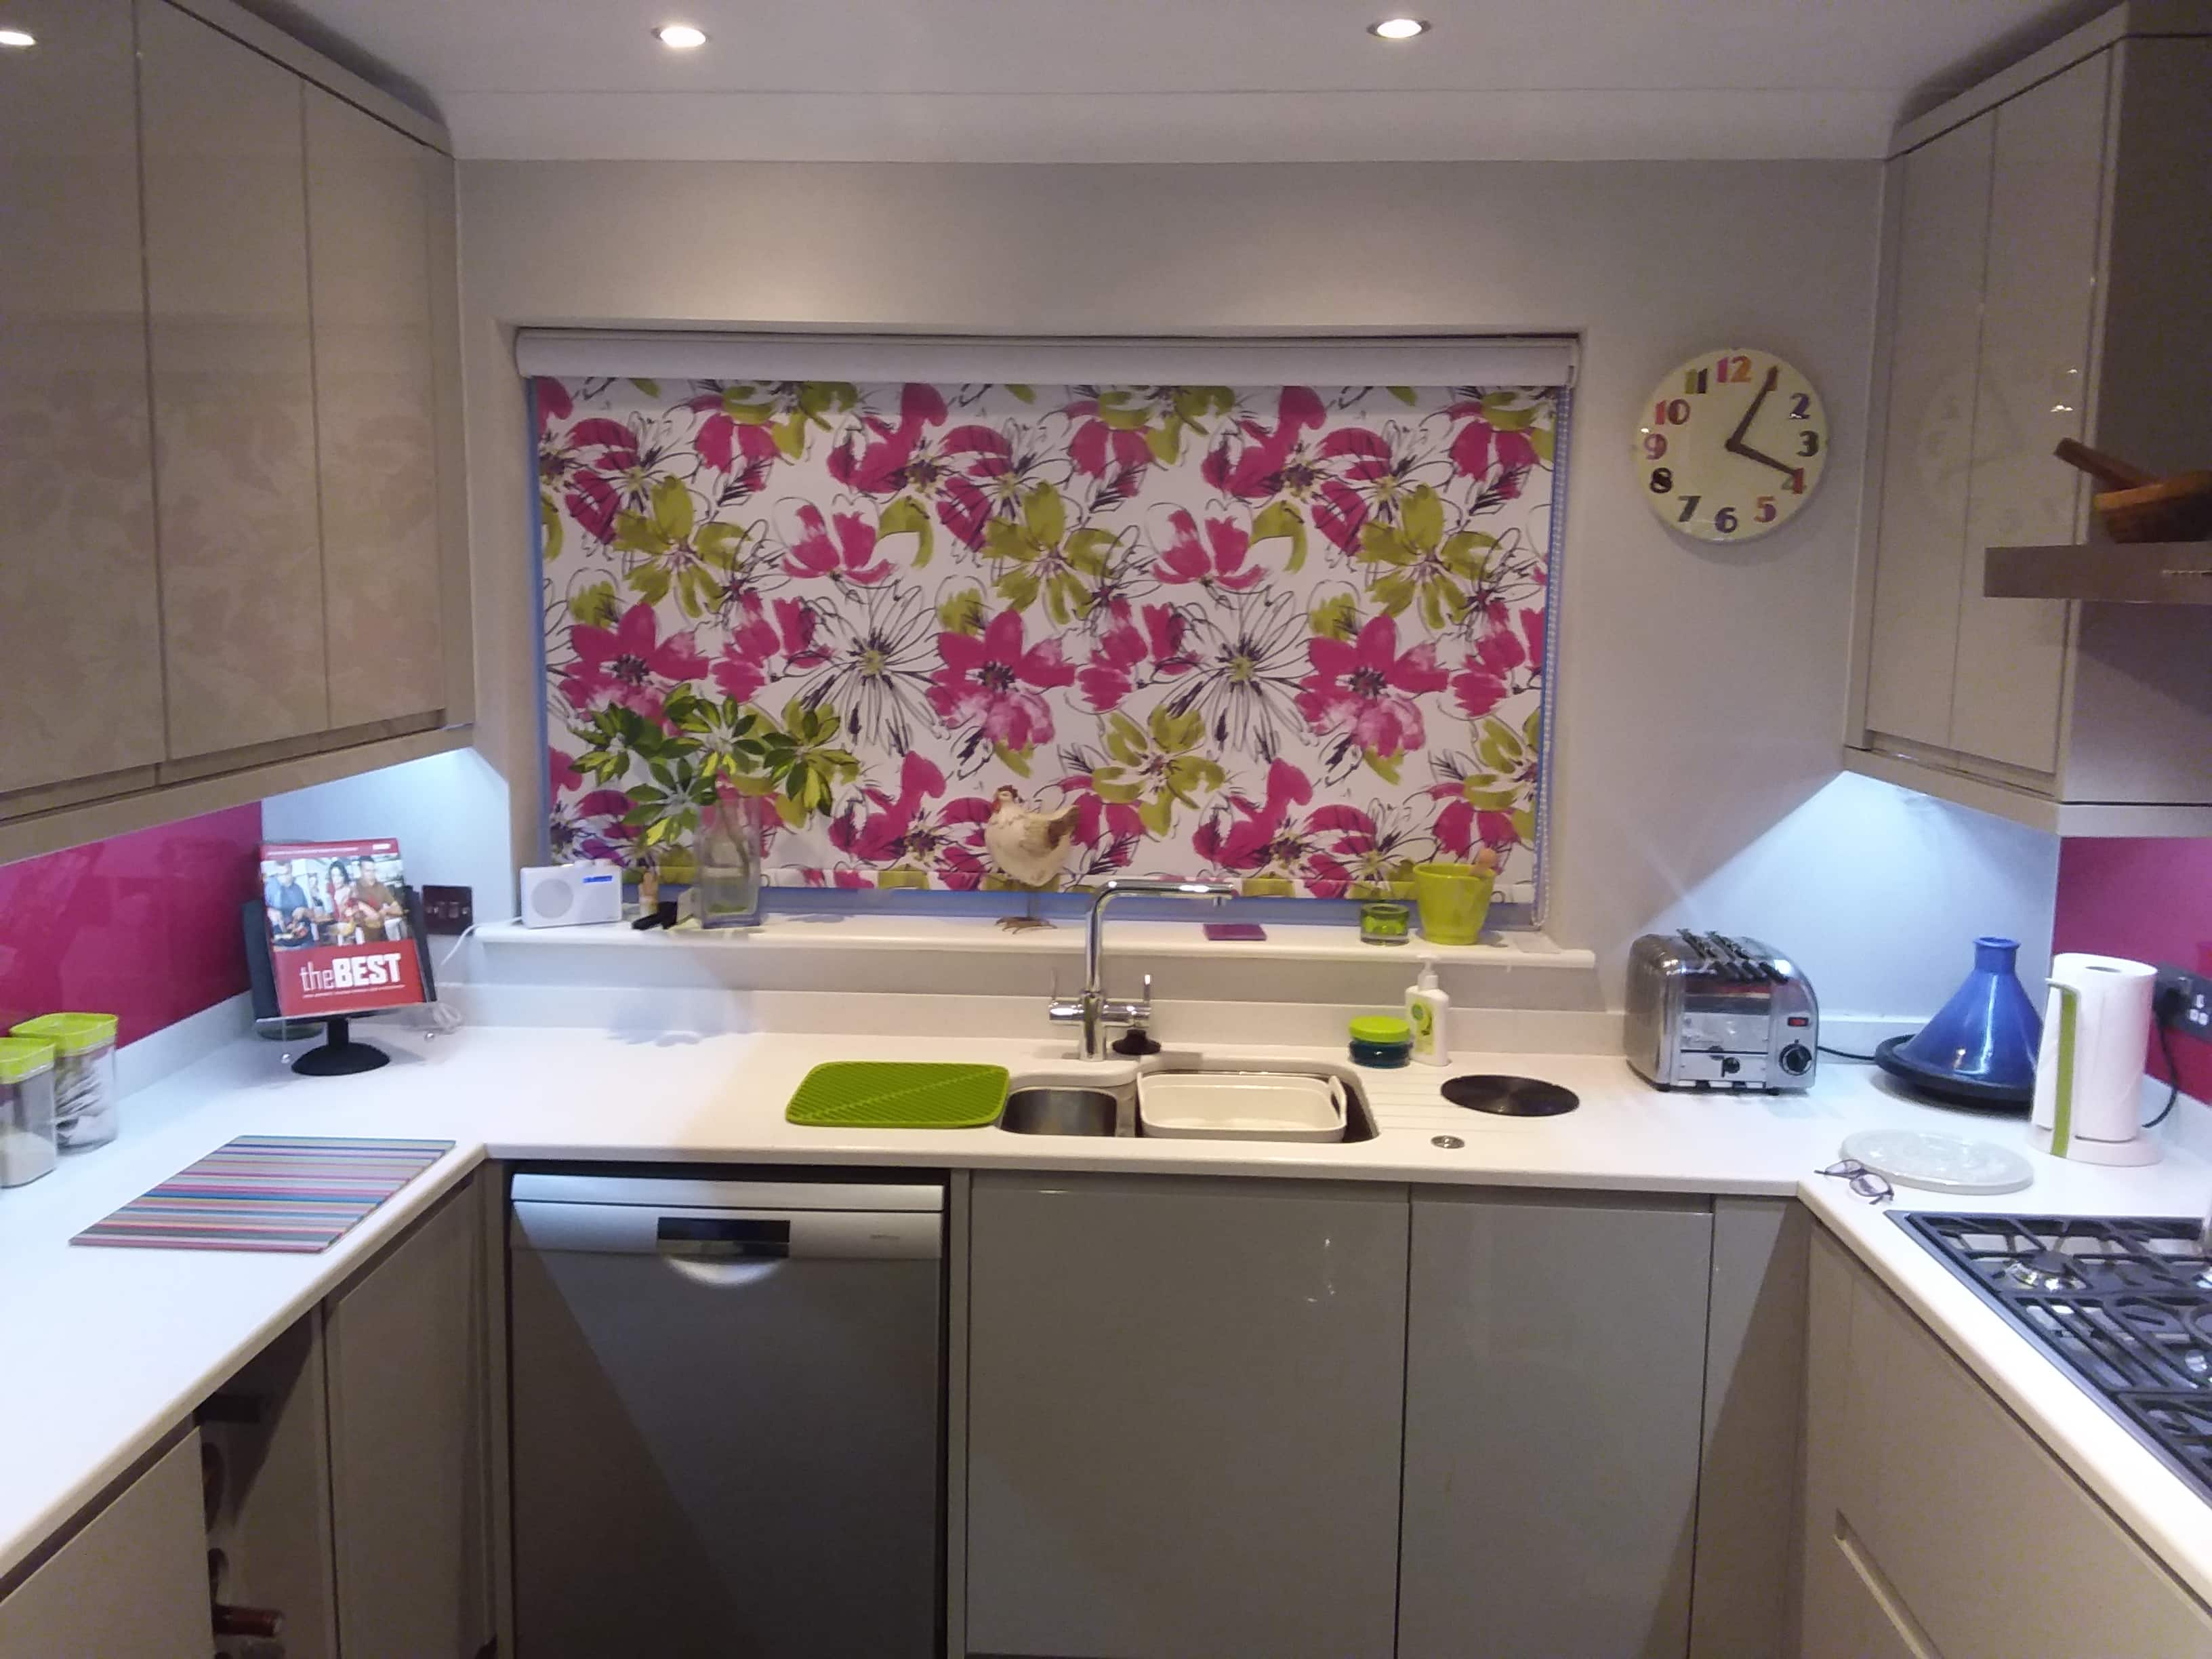 Kitchen Blind Ideas Uk